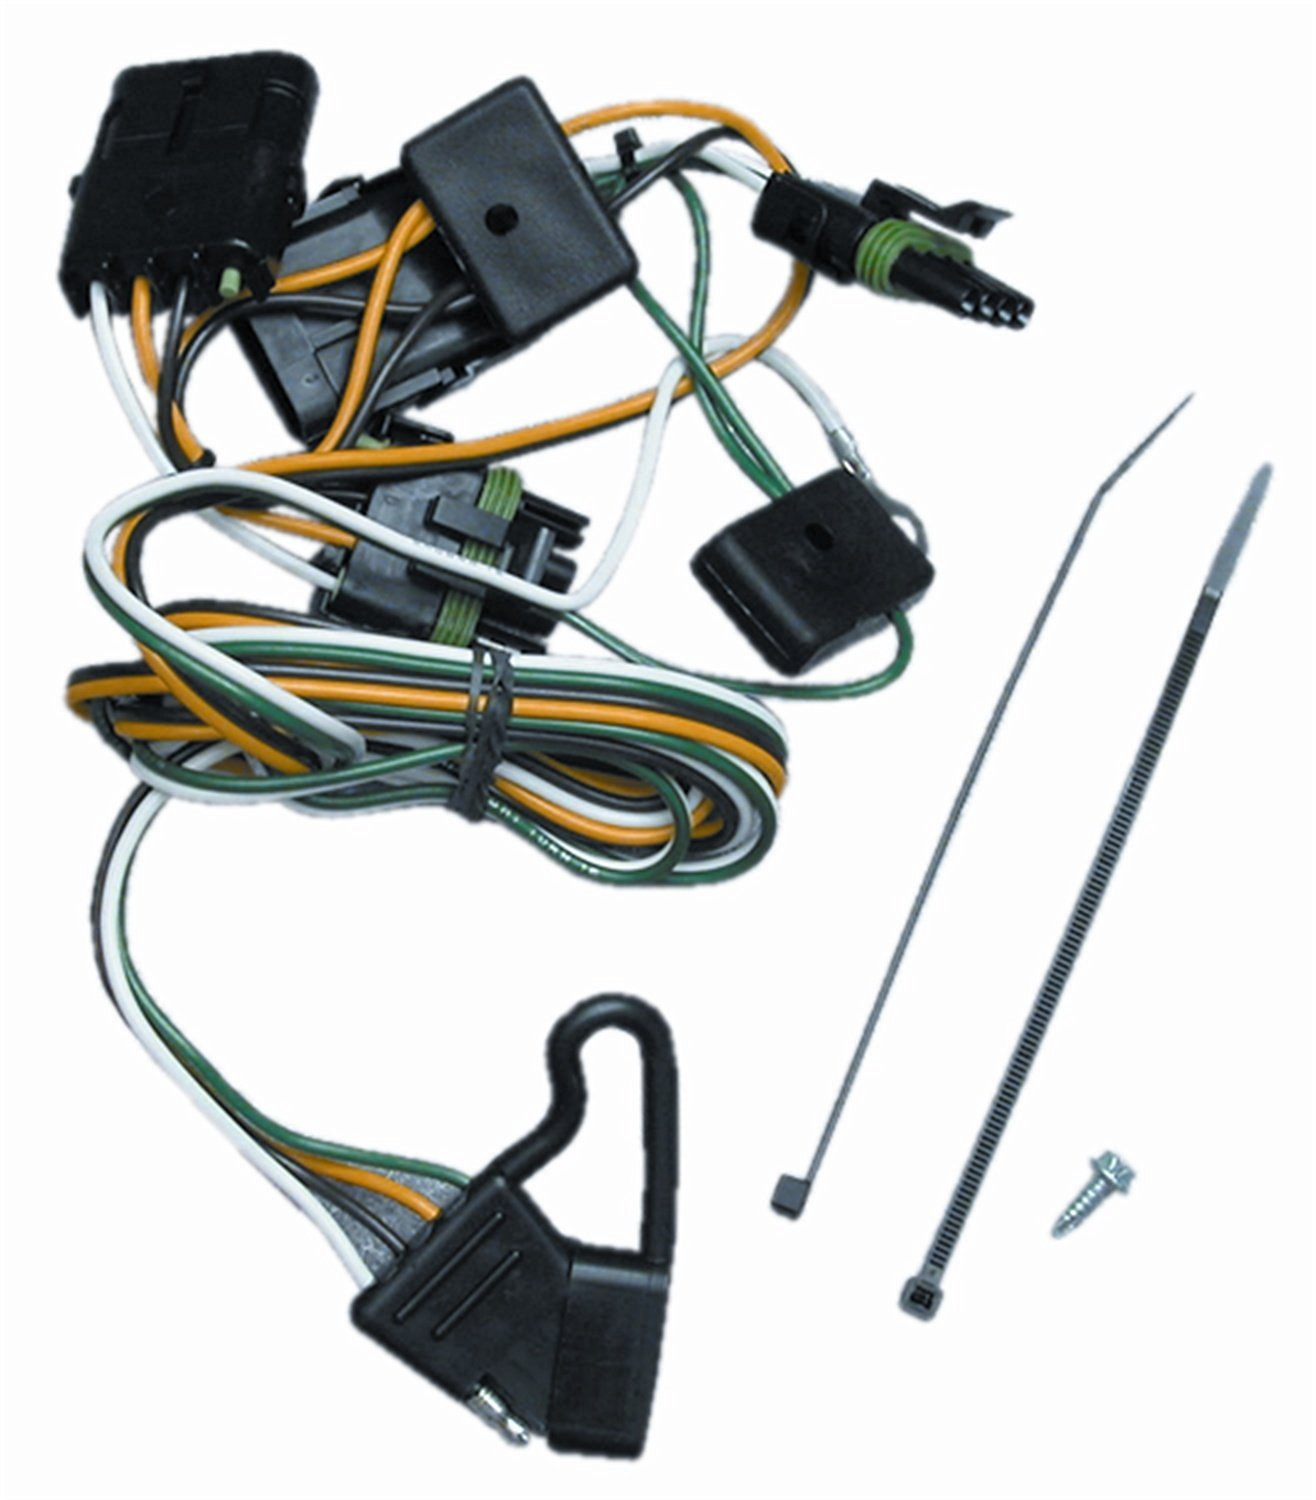 Magnificent Buy Vehicle To Trailer Wiring Harness Connector 91 97 Jeep Wrangler Wiring 101 Relewellnesstrialsorg